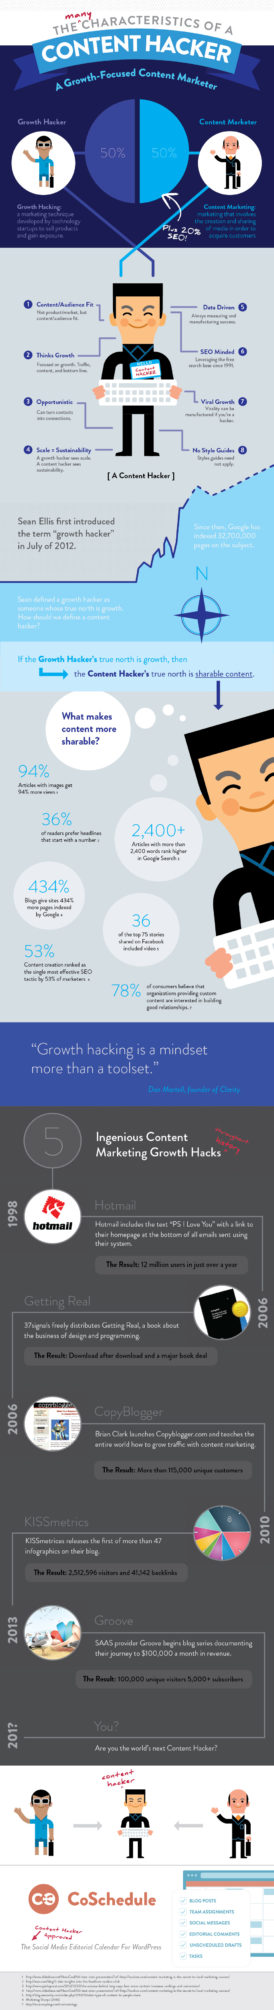 Content_Hacker_infographic